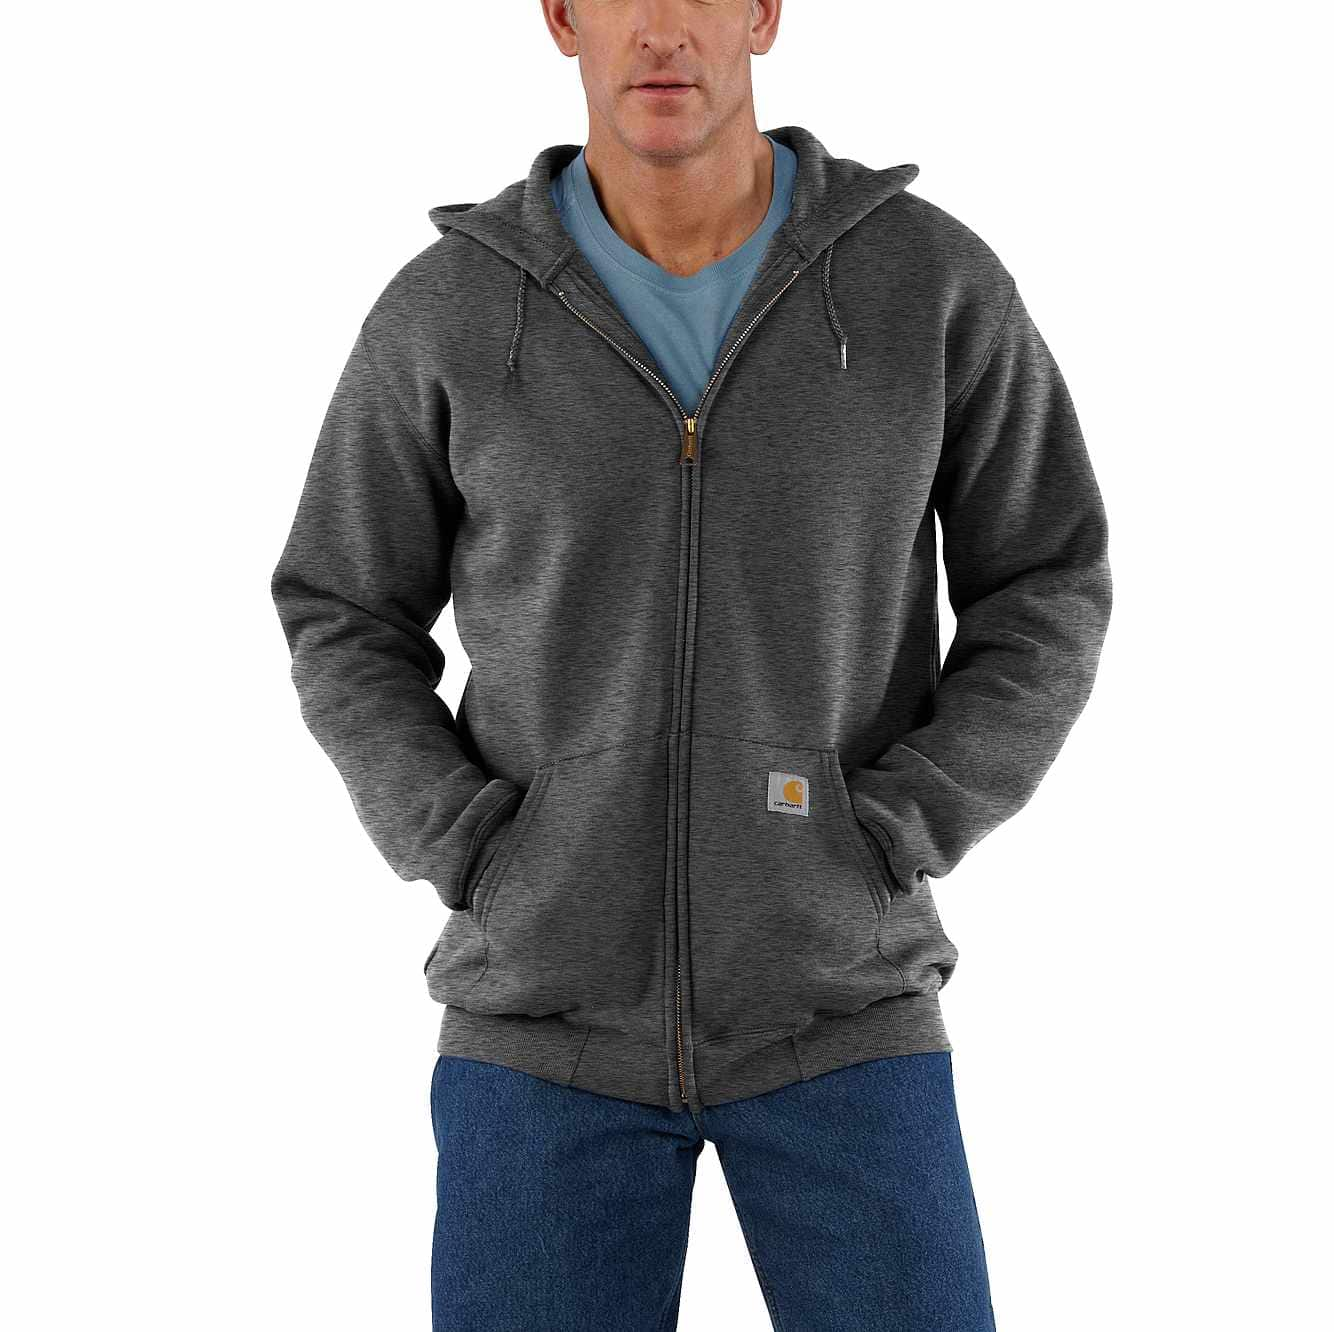 Picture of Midweight Hooded Zip-Front Sweatshirt in Carbon Heather